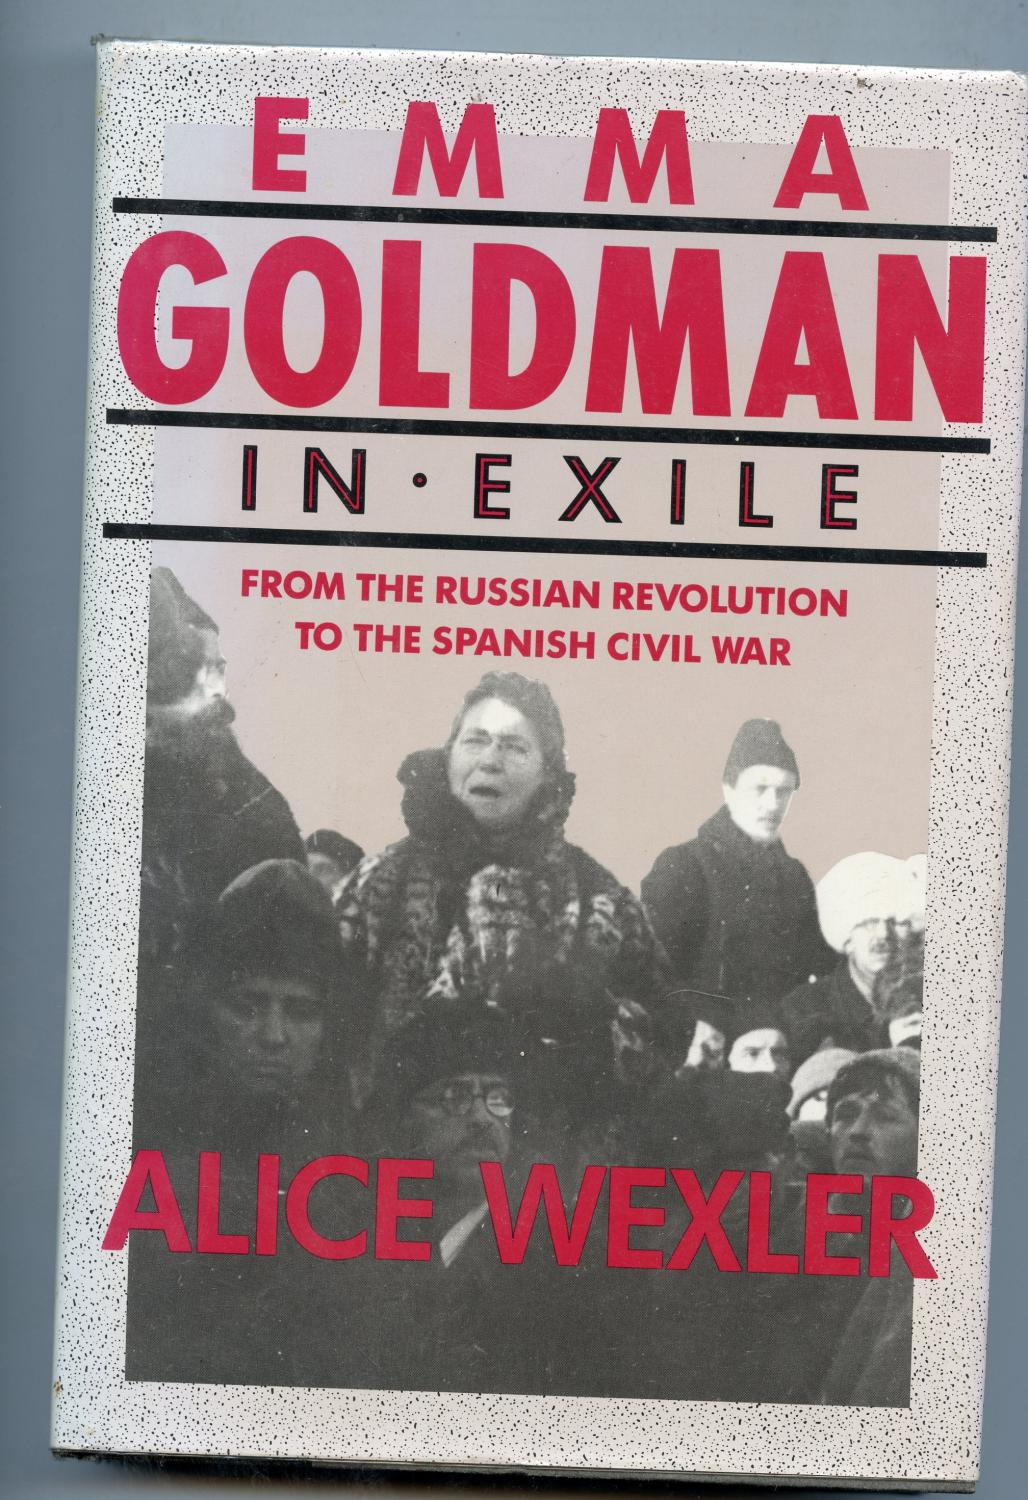 Emma Goldman in Exile: From the Russian Revolution to the Spanish Civil War